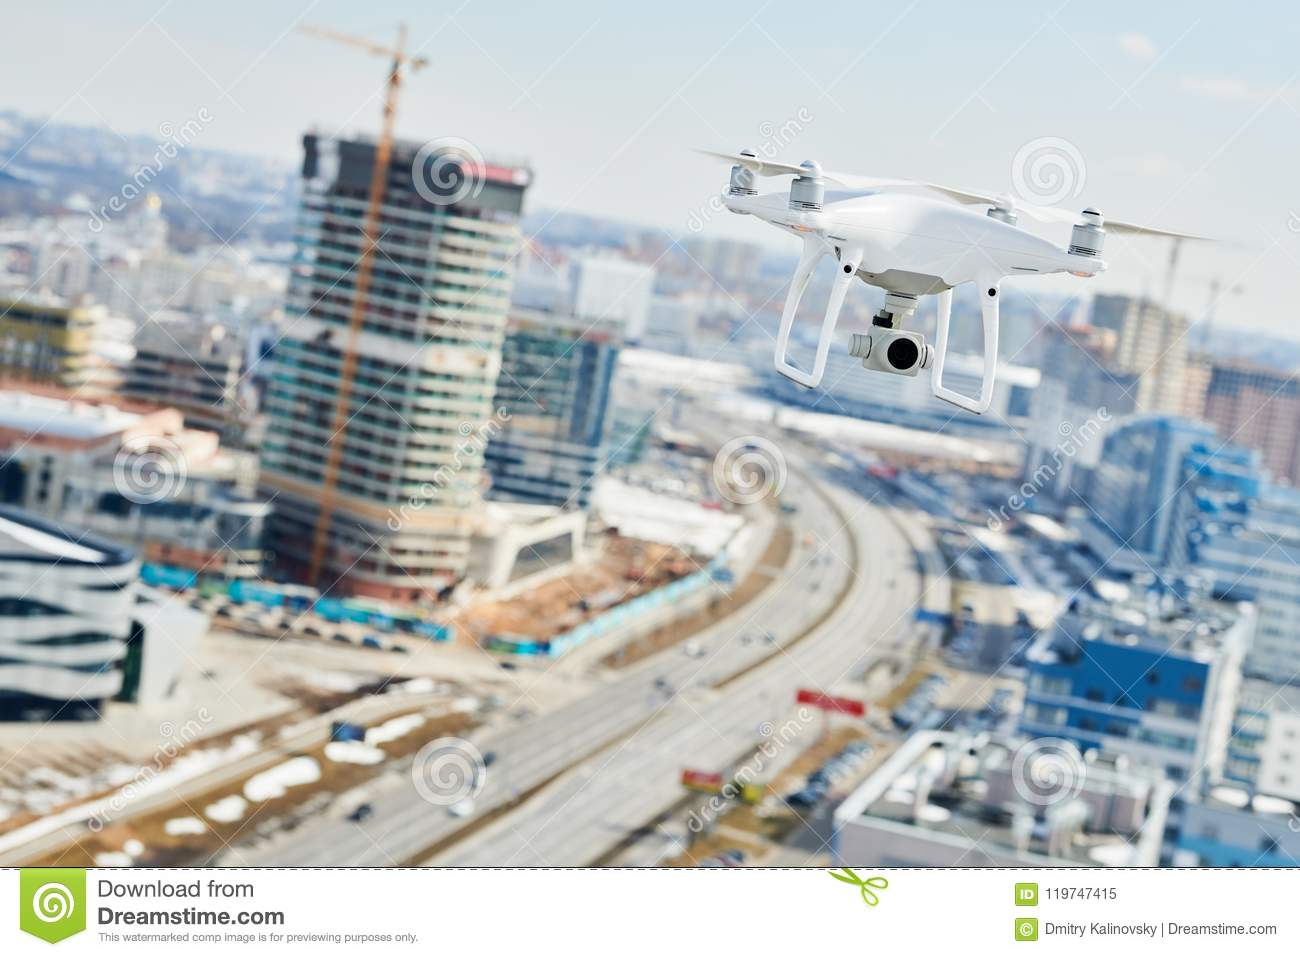 Drone with digital camera hovering over city